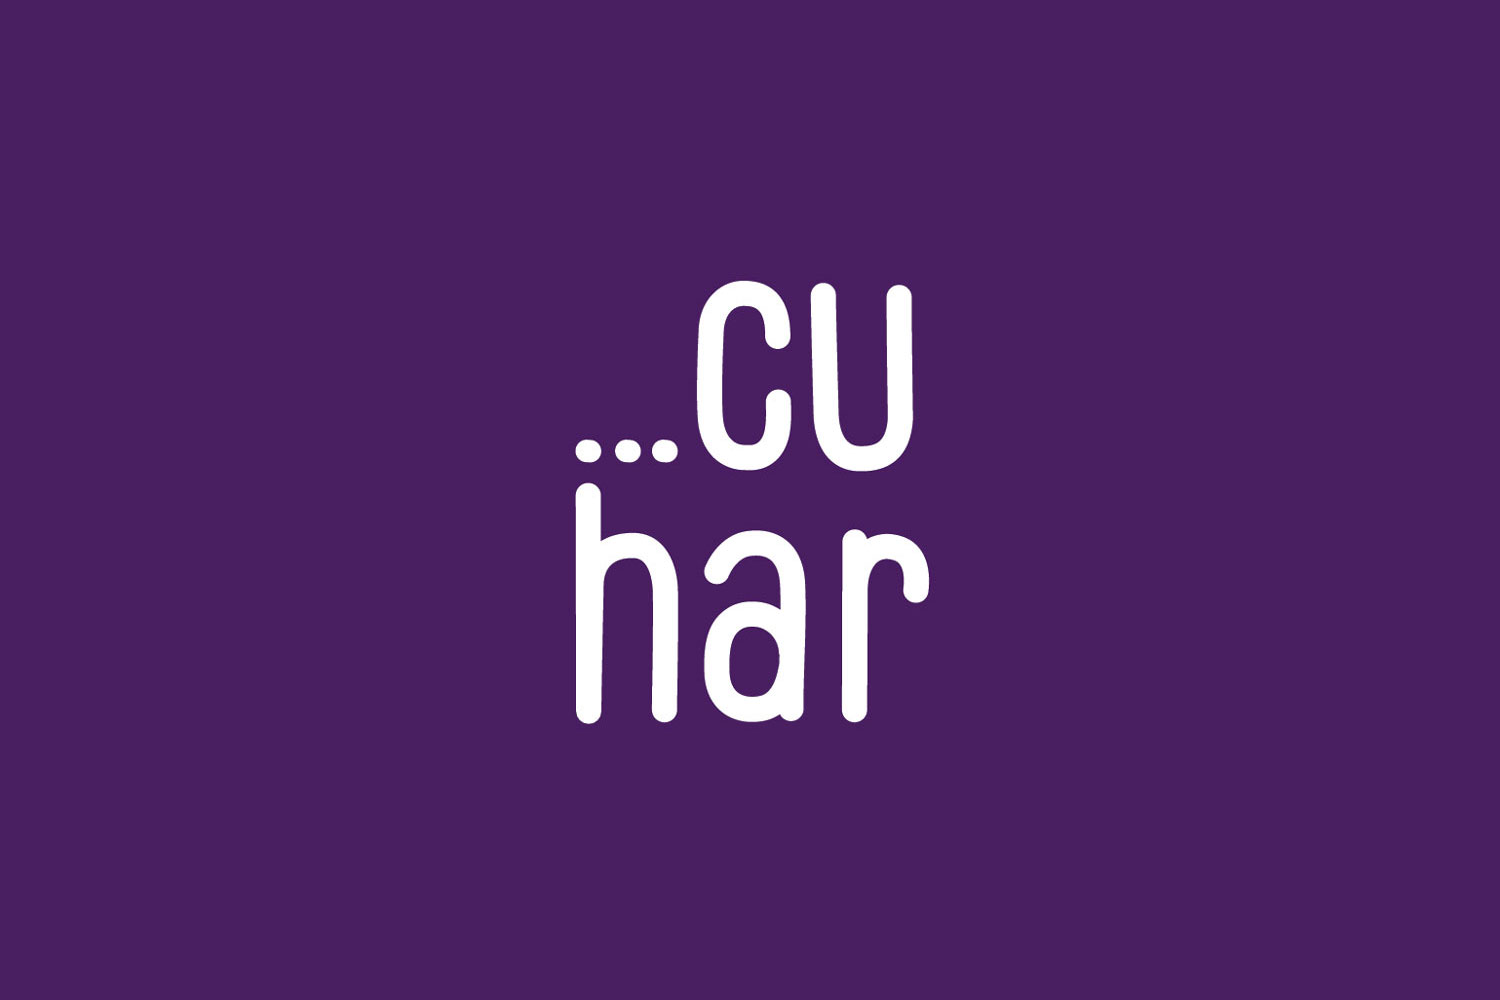 cu har logo color background by inoveo